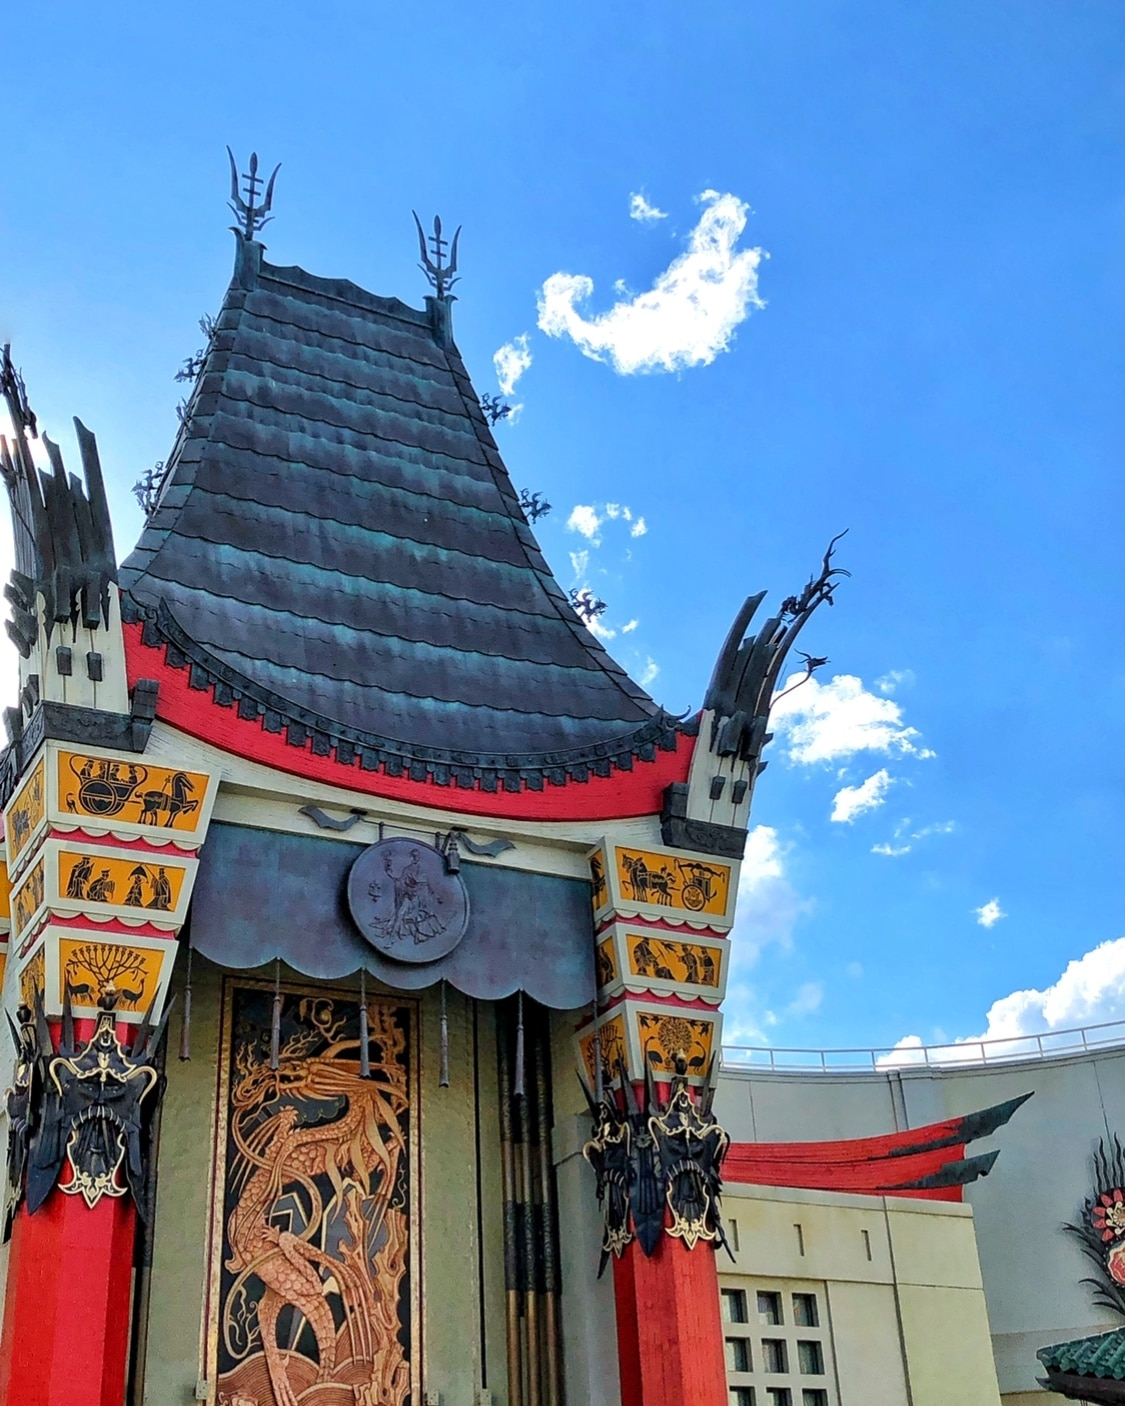 Chinese Theater at Disney's Hollywood Studios in Walt Disney World